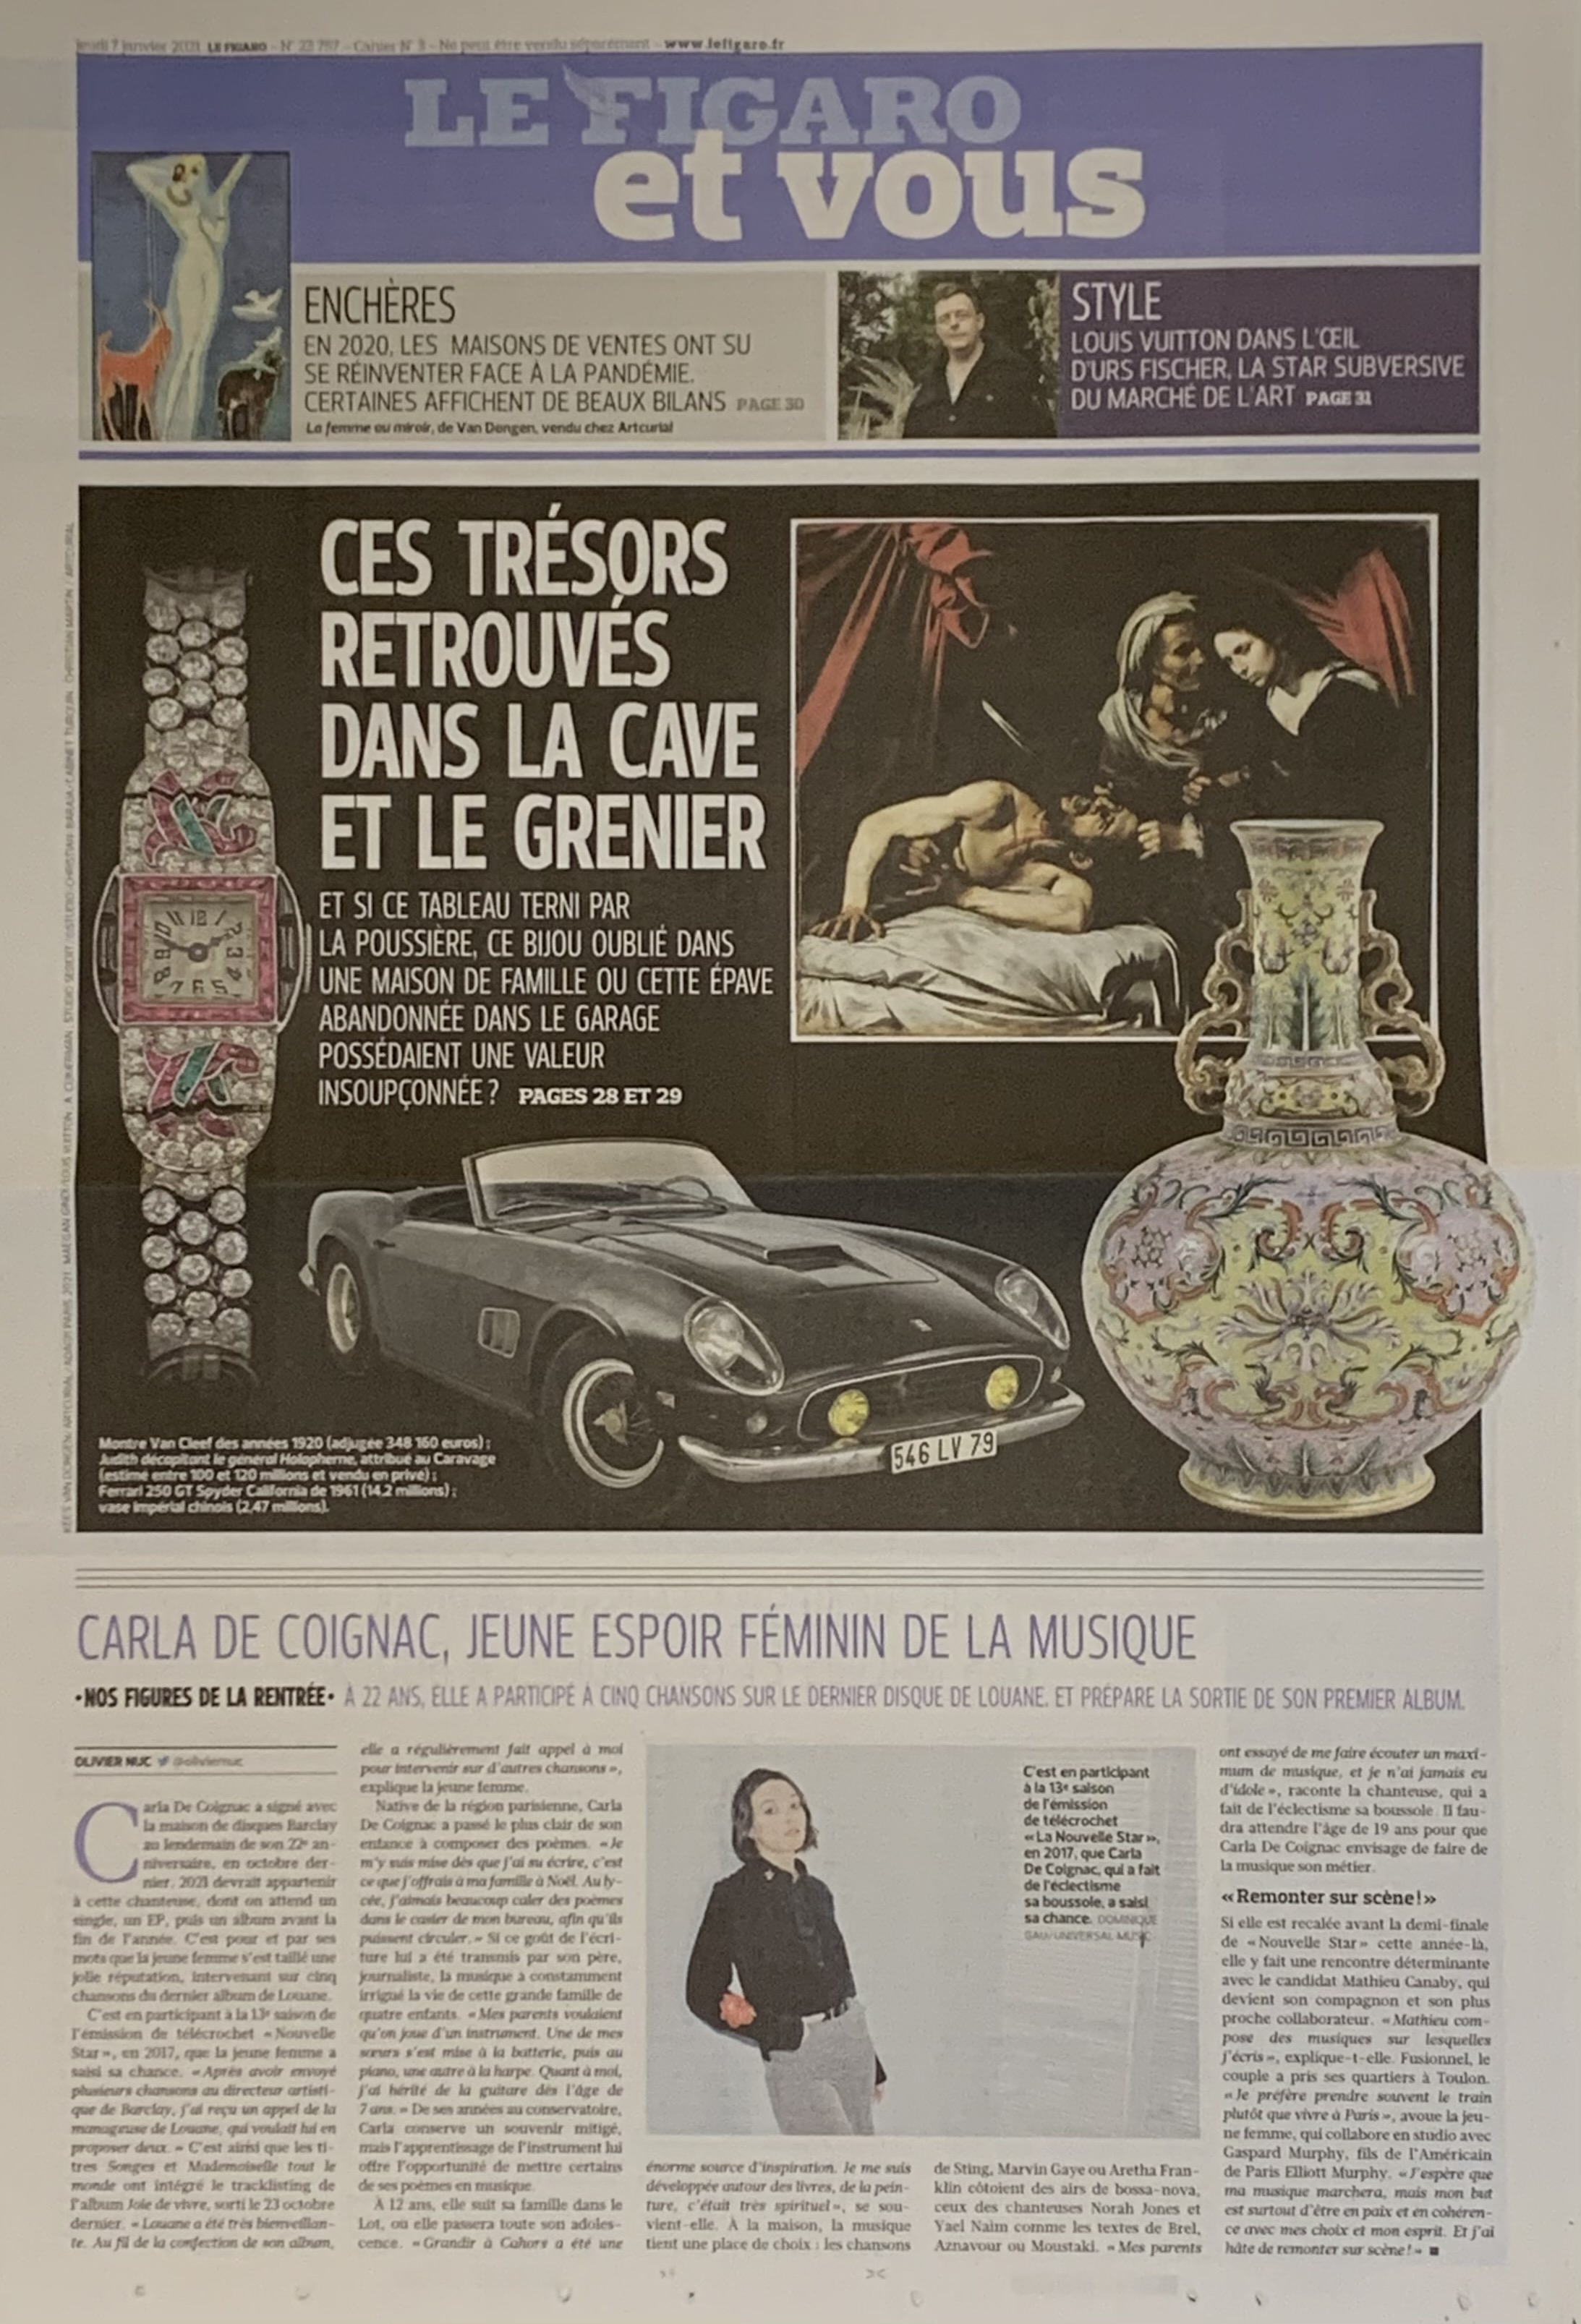 le figaro van cleef and arpels record encheres jewellery expert cukierman